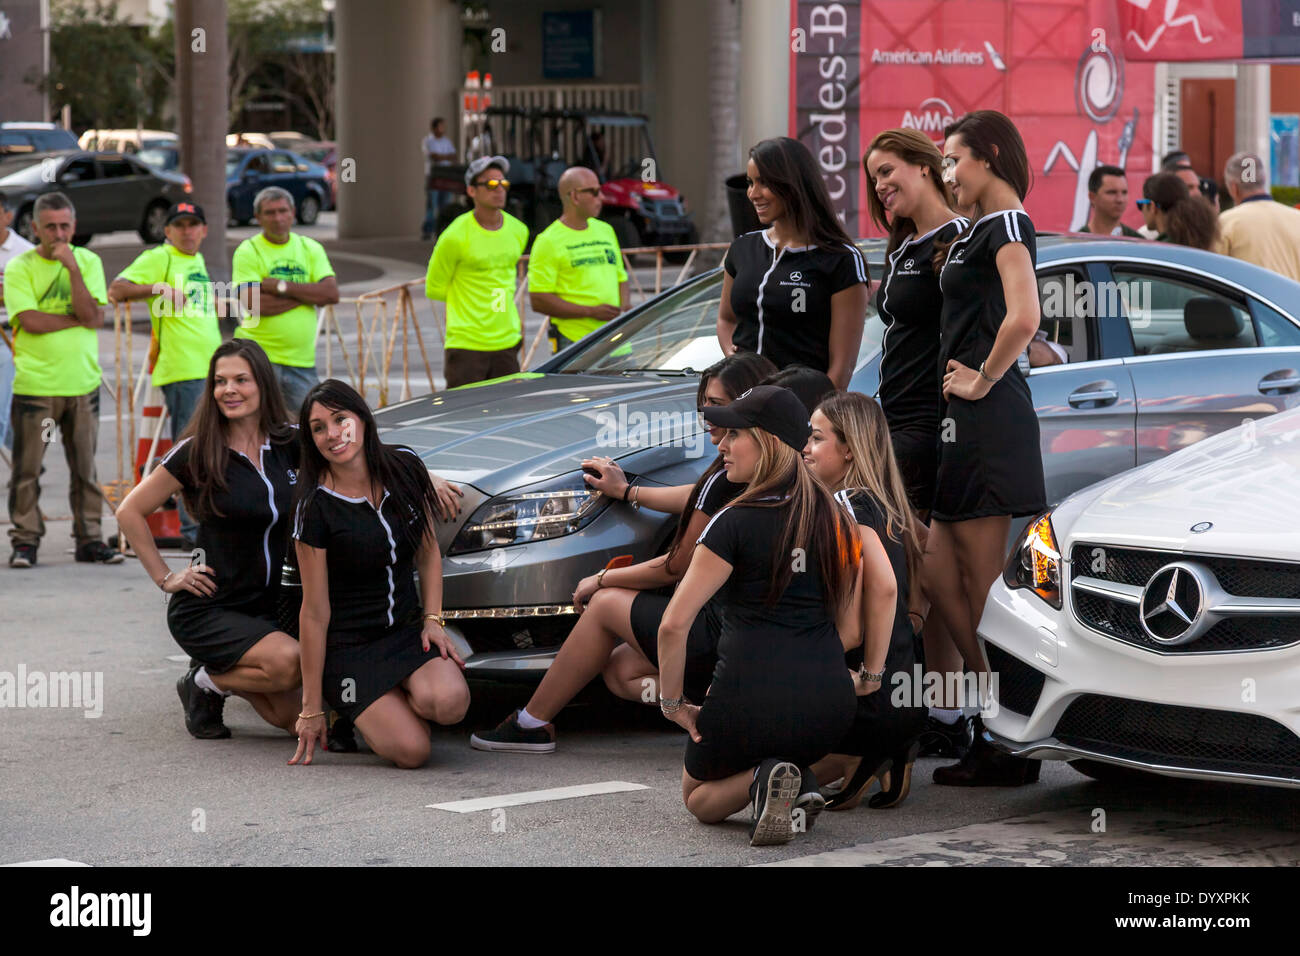 Mercedes Benz models with pace cars at the 2014 Mercedes-Benz Corporate Run in Miami, Florida, USA. Stock Photo